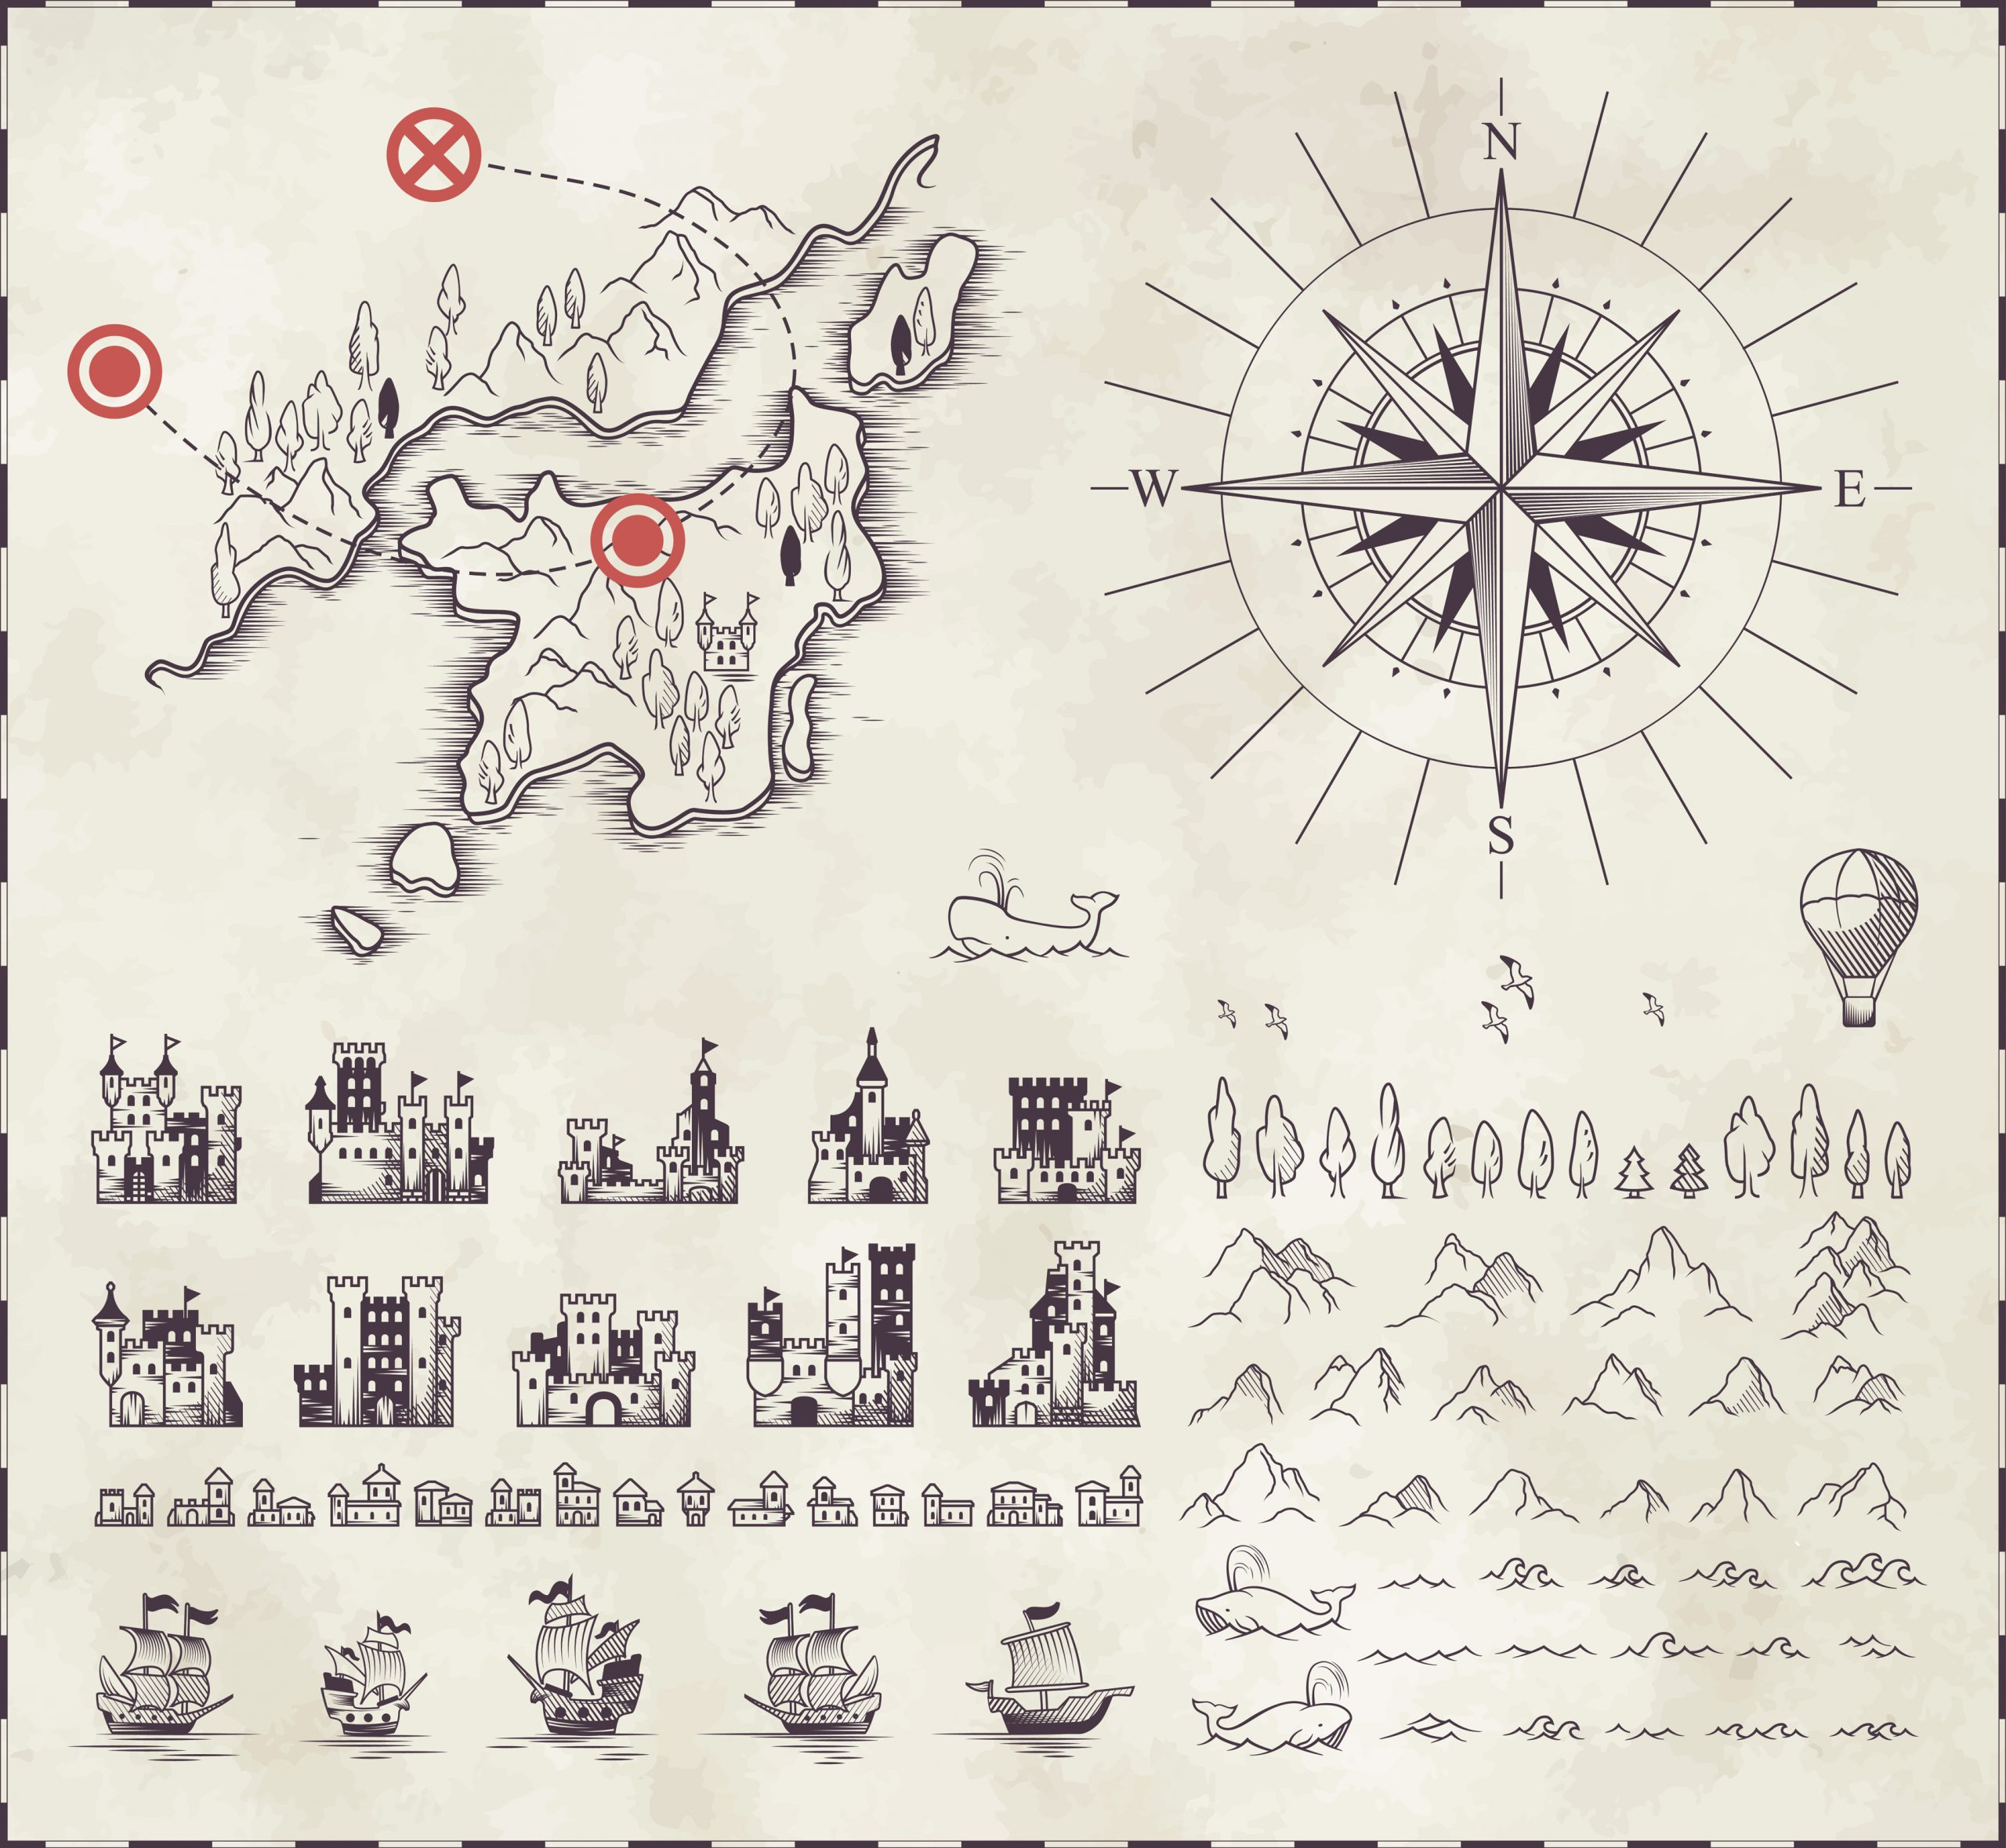 Set in medieval cartography